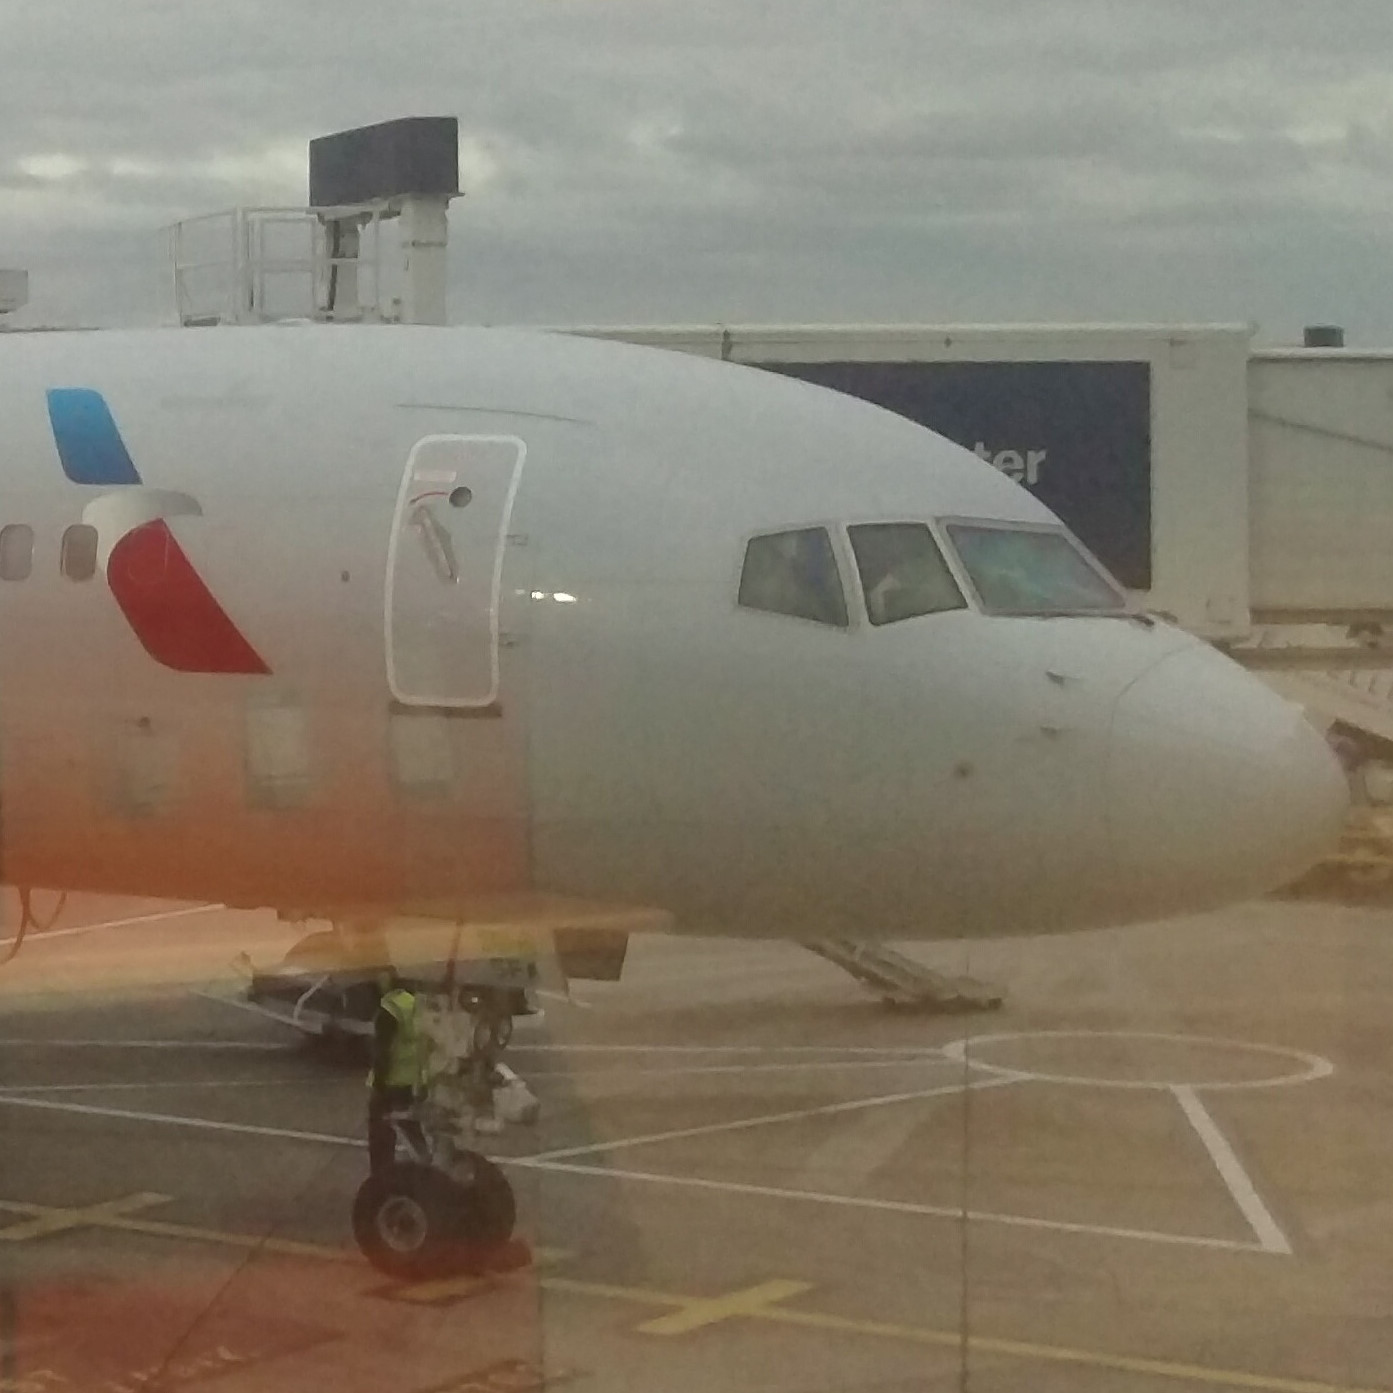 My American Airlines Boeing 757 at the gate at Manchester Airport, having safely returned me from Chicago O'Hare.